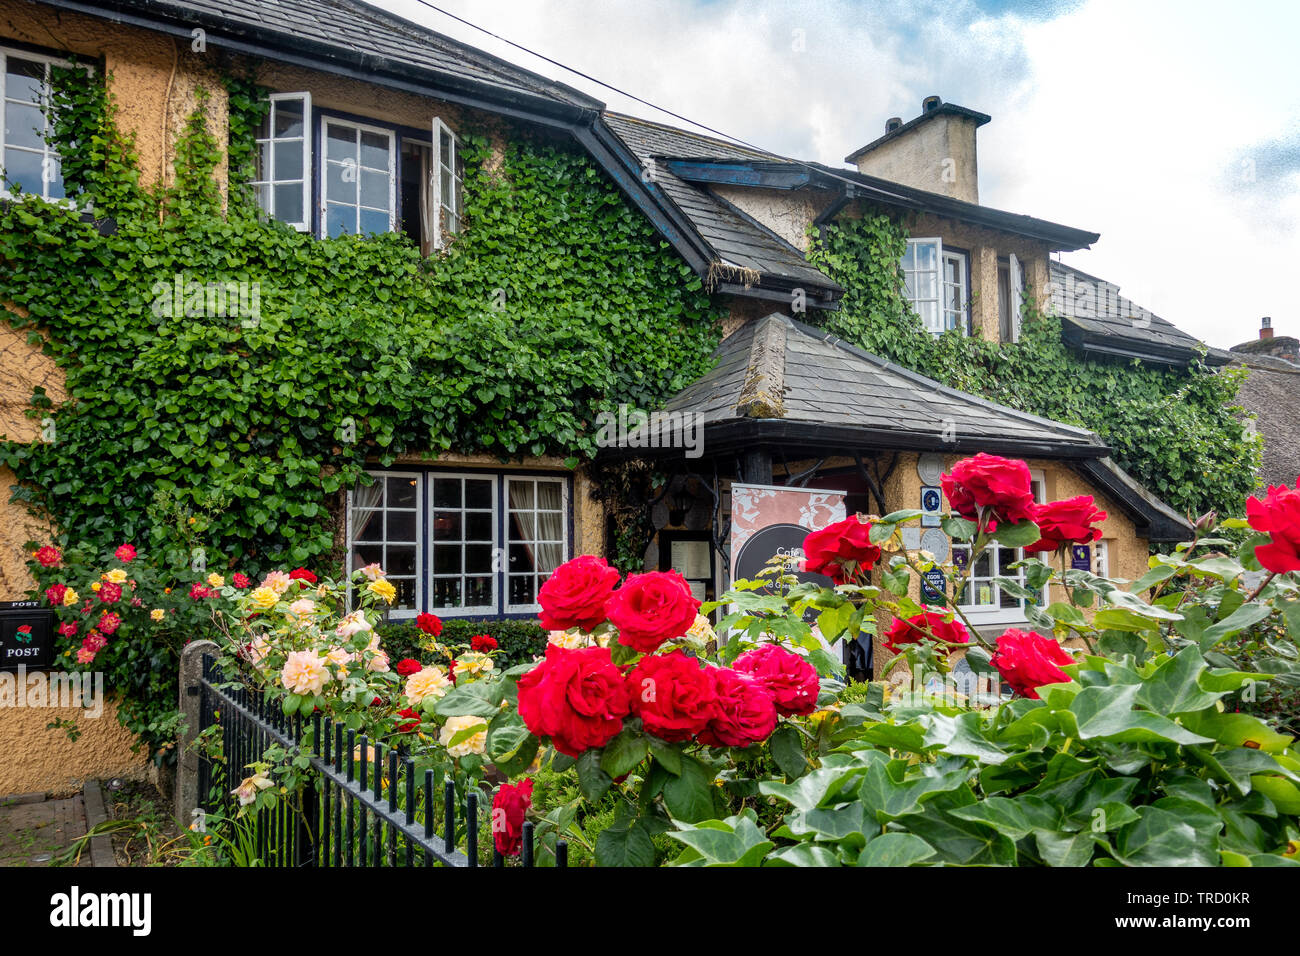 Dunraven Arms Hotel in Adare, Ireland - Considered One of Ireland's Prettiest Towns - Stock Image